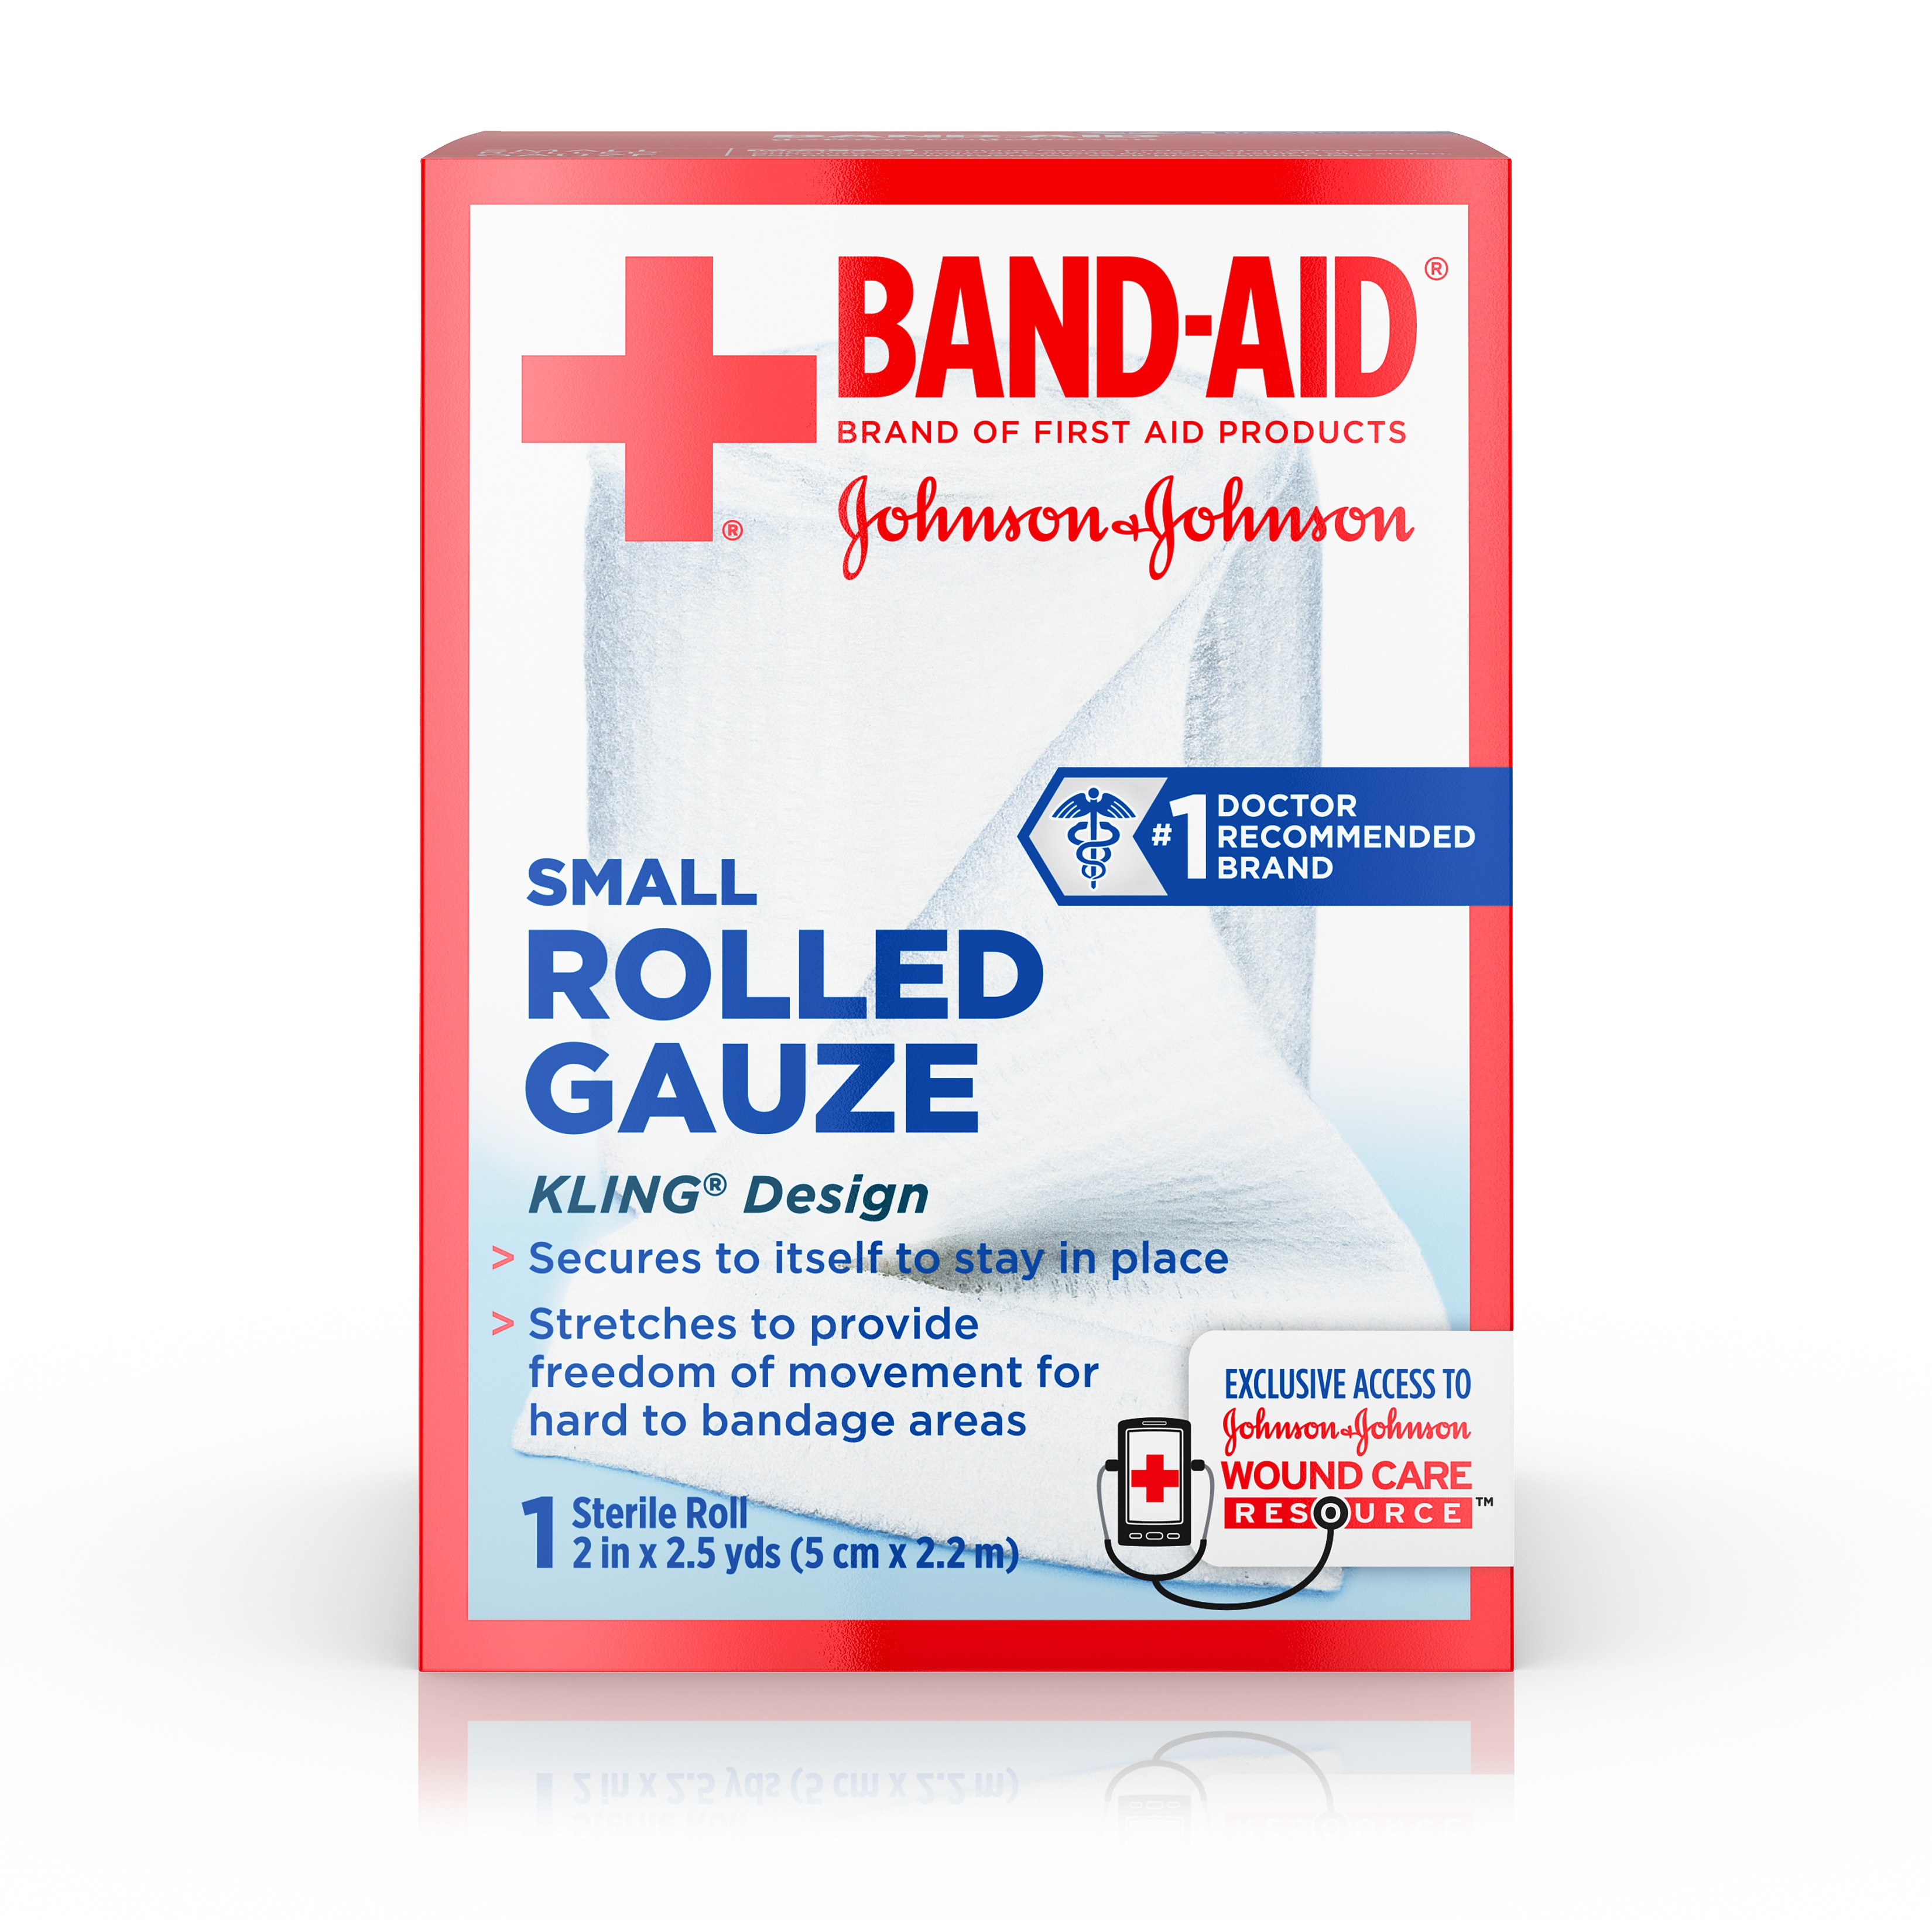 Click here to buy BAND-AID Brand of First Aid Products Rolled Gauze, 2 Inches by 2.5 Yards by Johnson & Johnson.